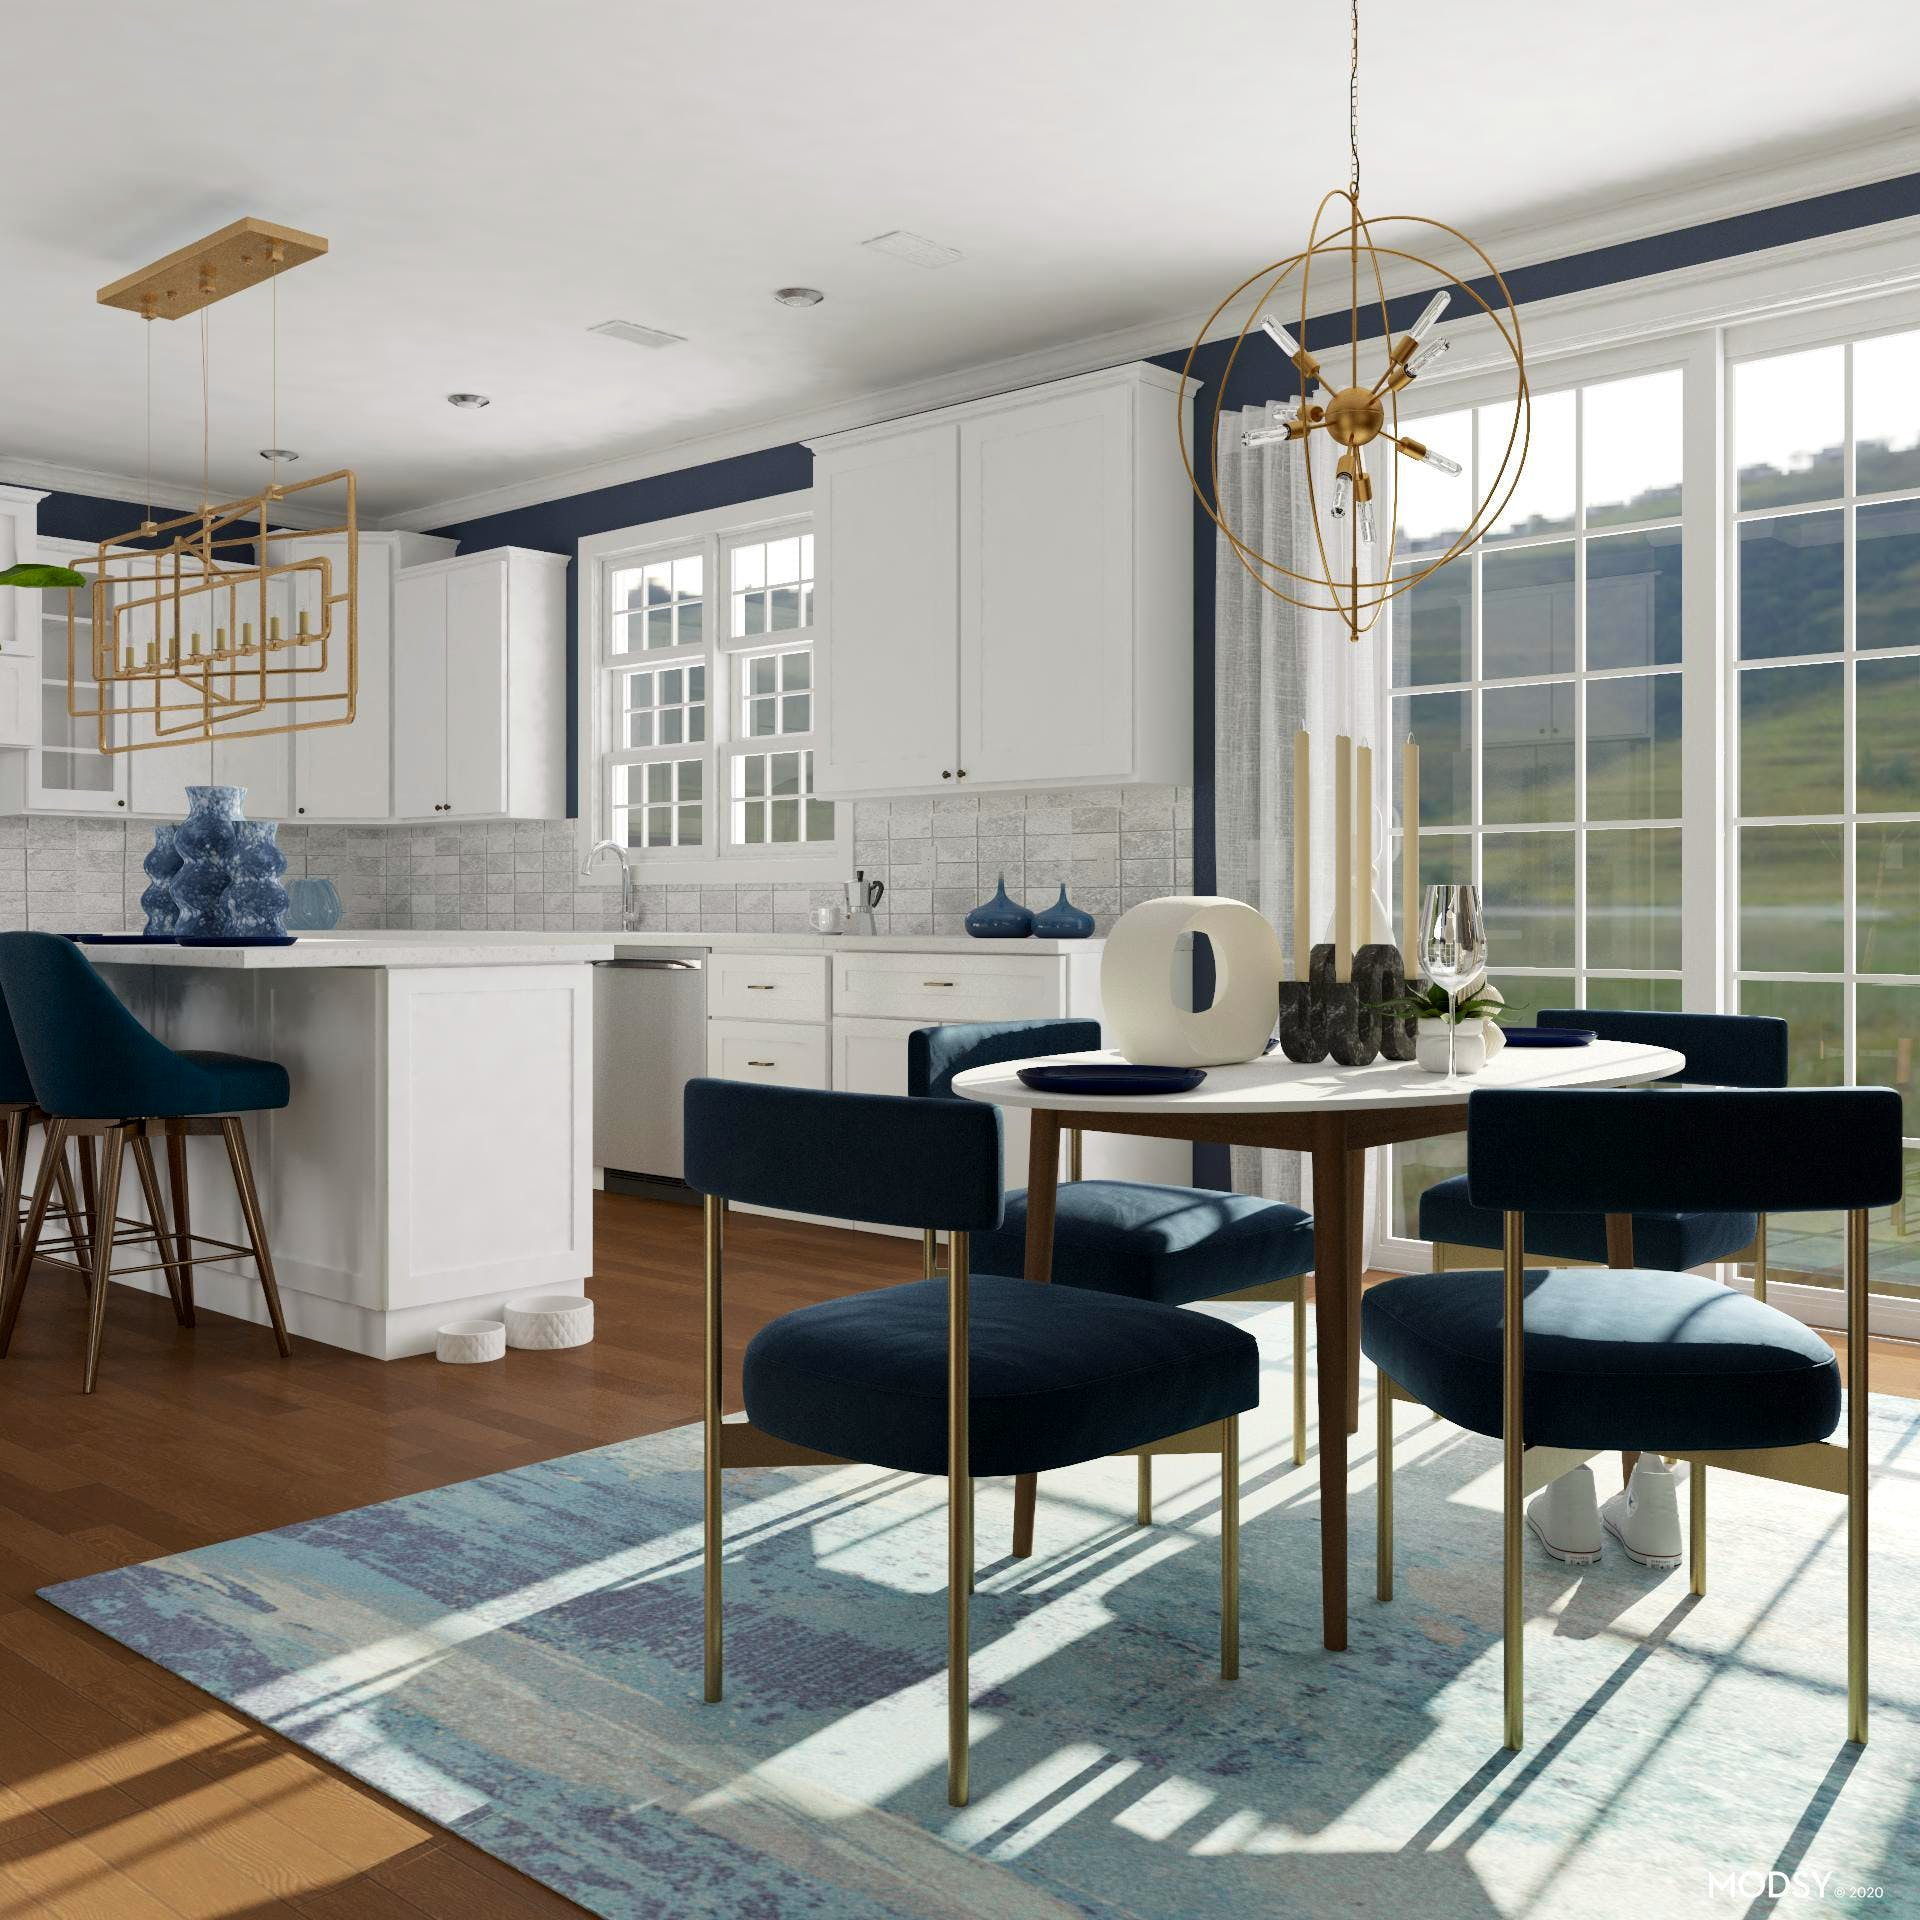 Modern, Blue Eat-In Kitchen And Dining Room